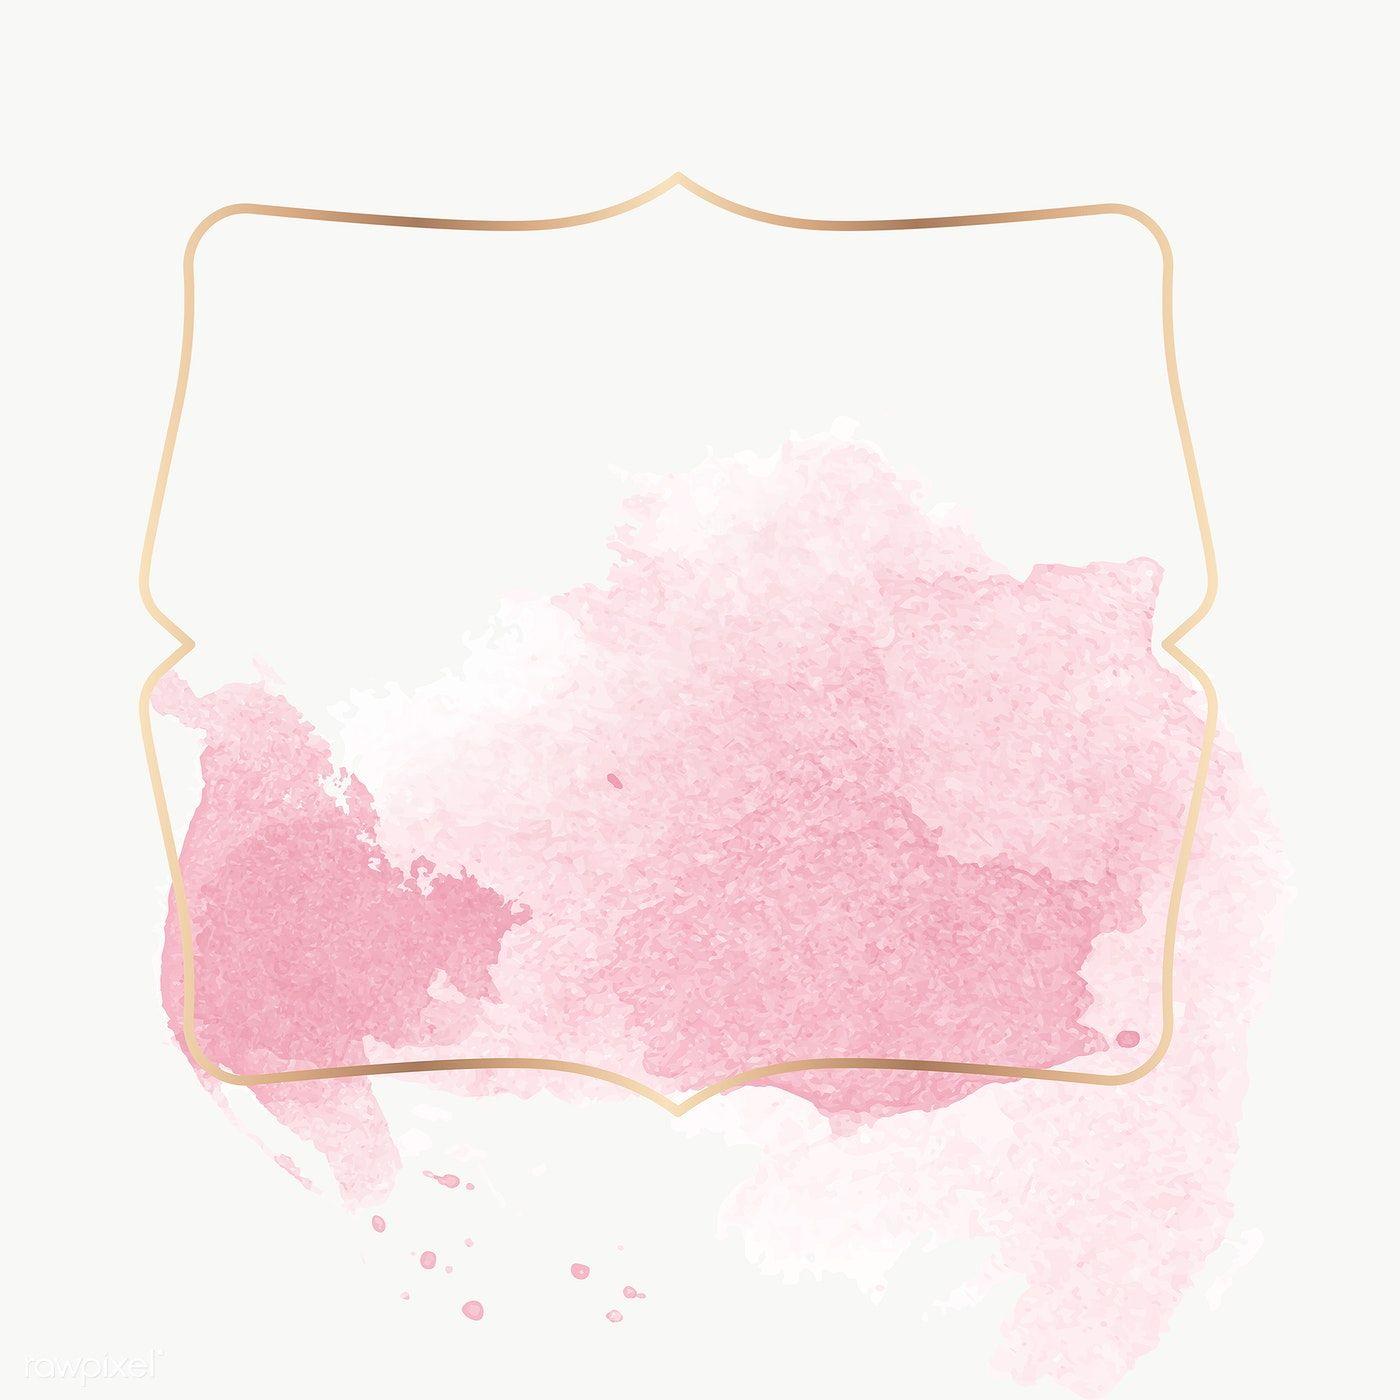 Gold Badge With Pink Watercolor Paint Transparent Png Premium Image By Rawpixel Com Nunny Pink Watercolor Pink Posters Background Design Vector